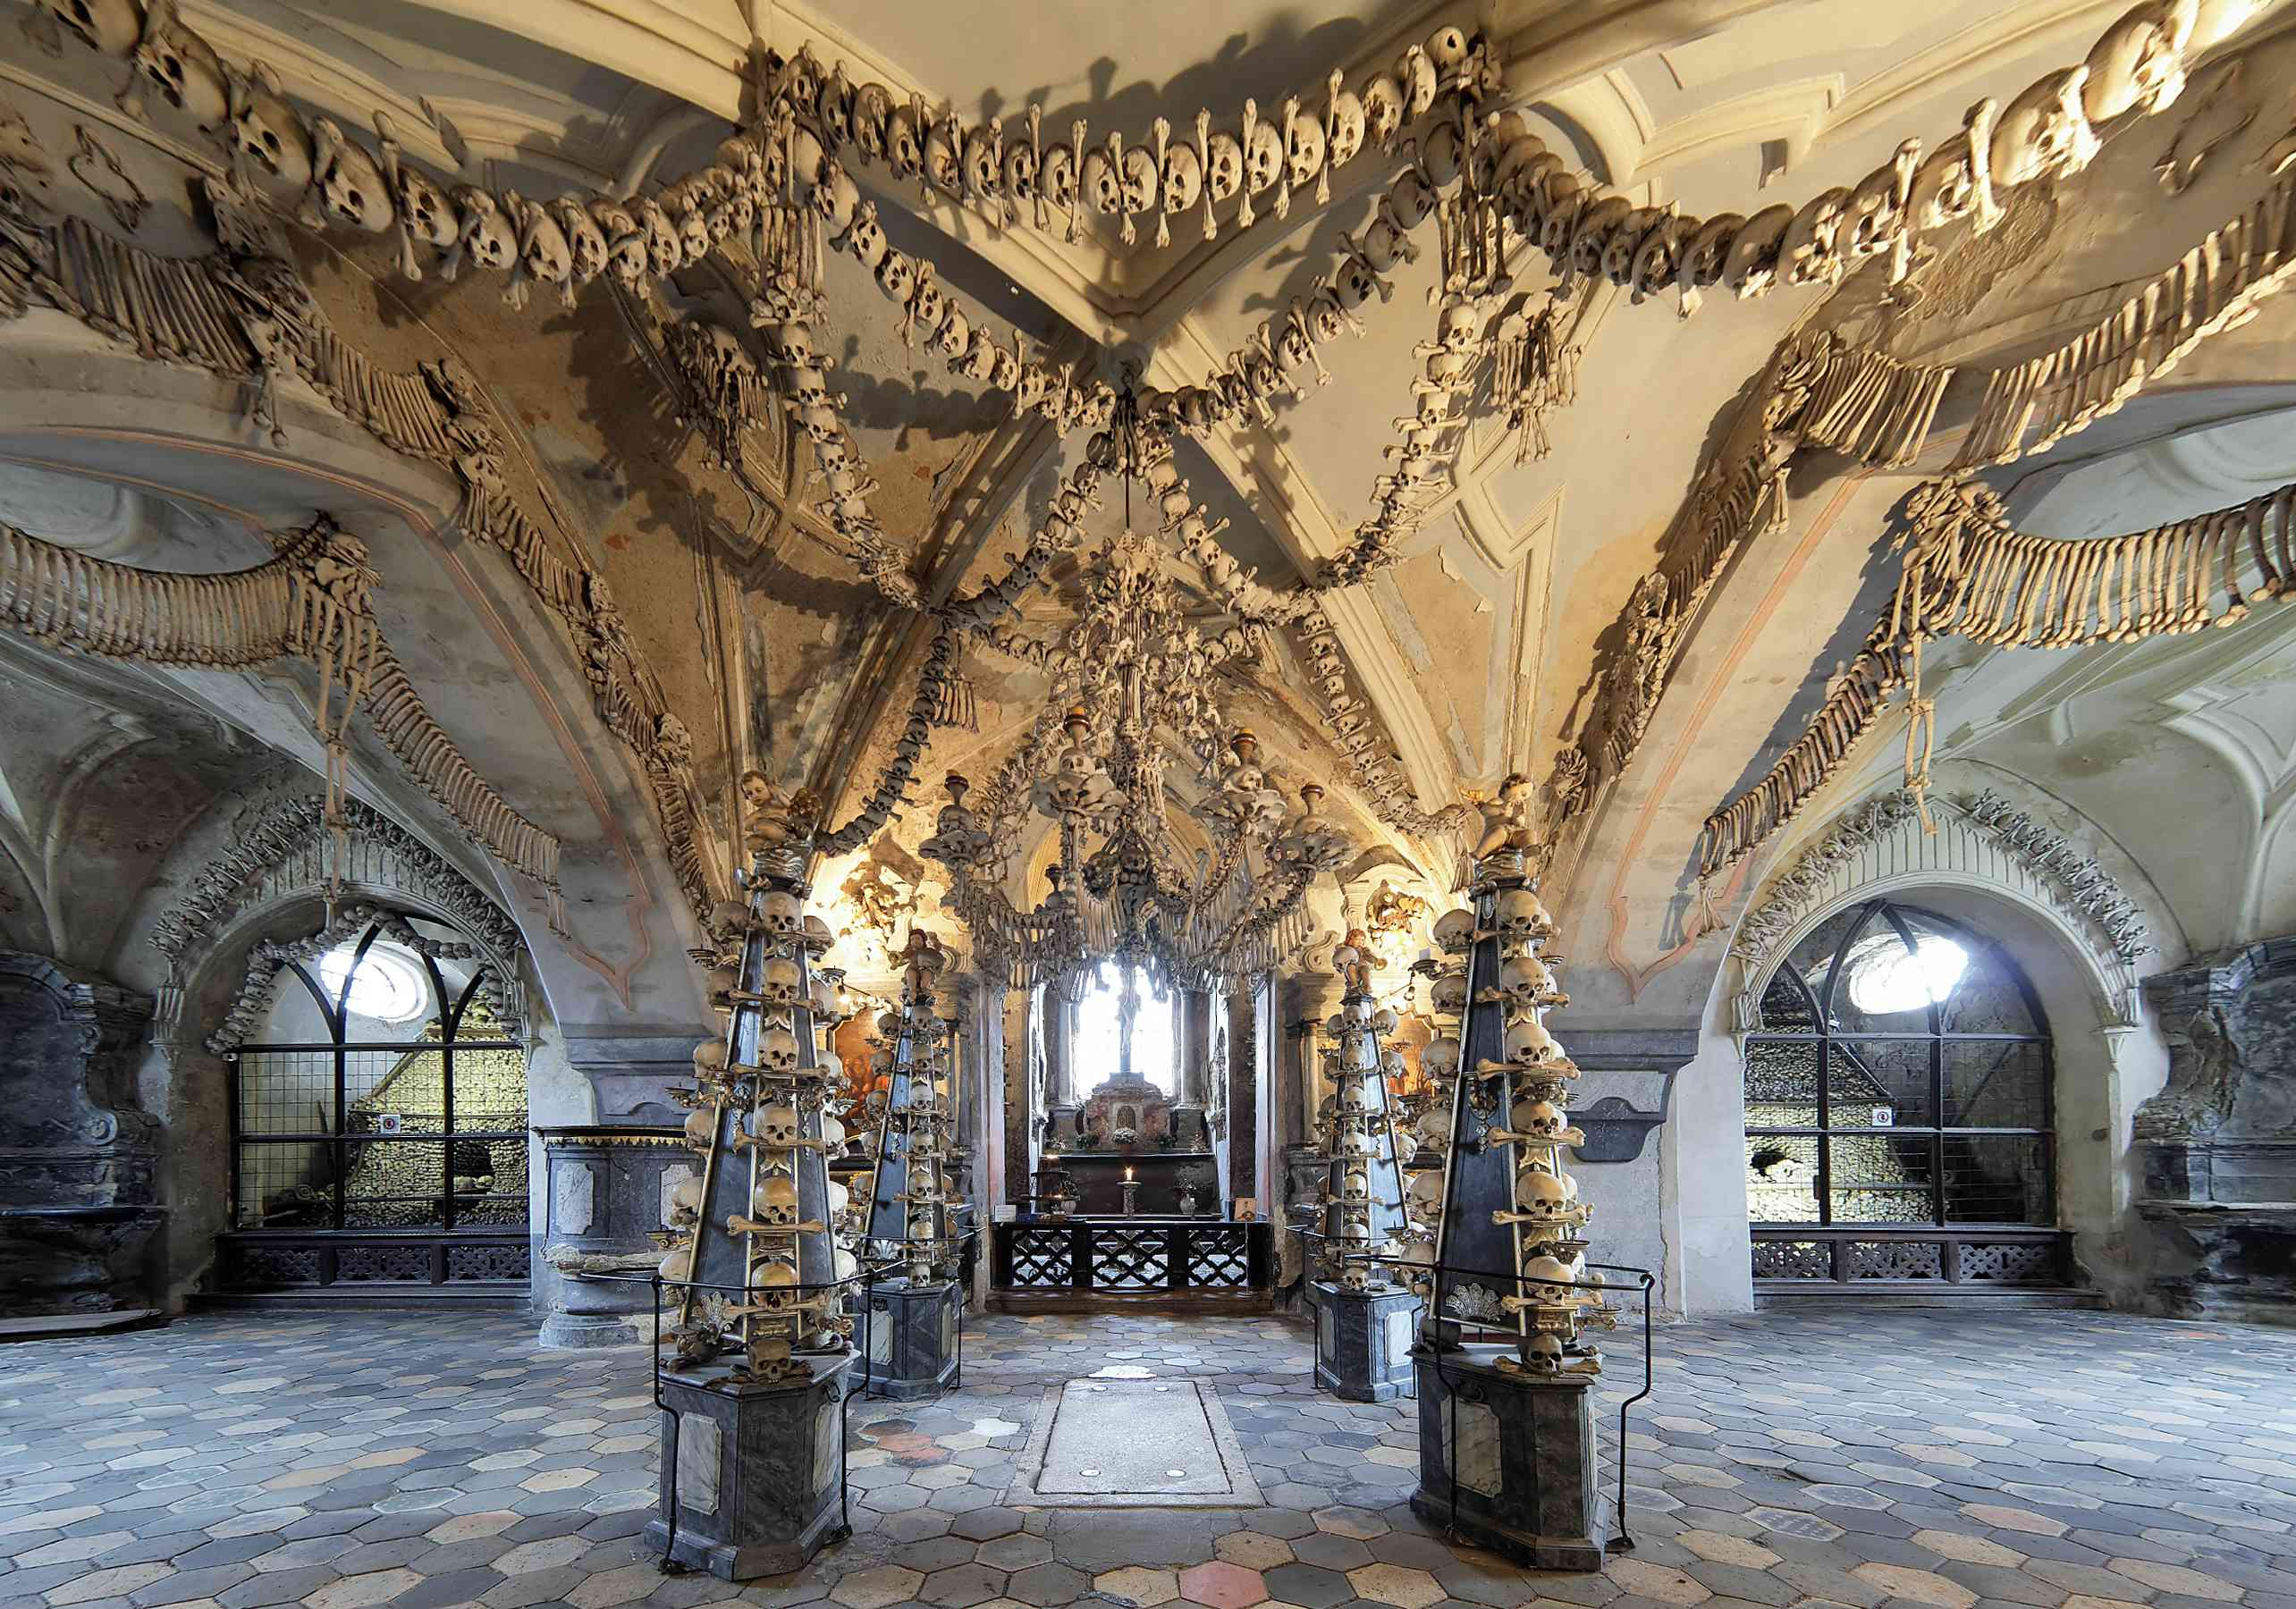 Bones and skulls elaborately decorate the ceiling of Sedlec Ossuary in the Czech Republic